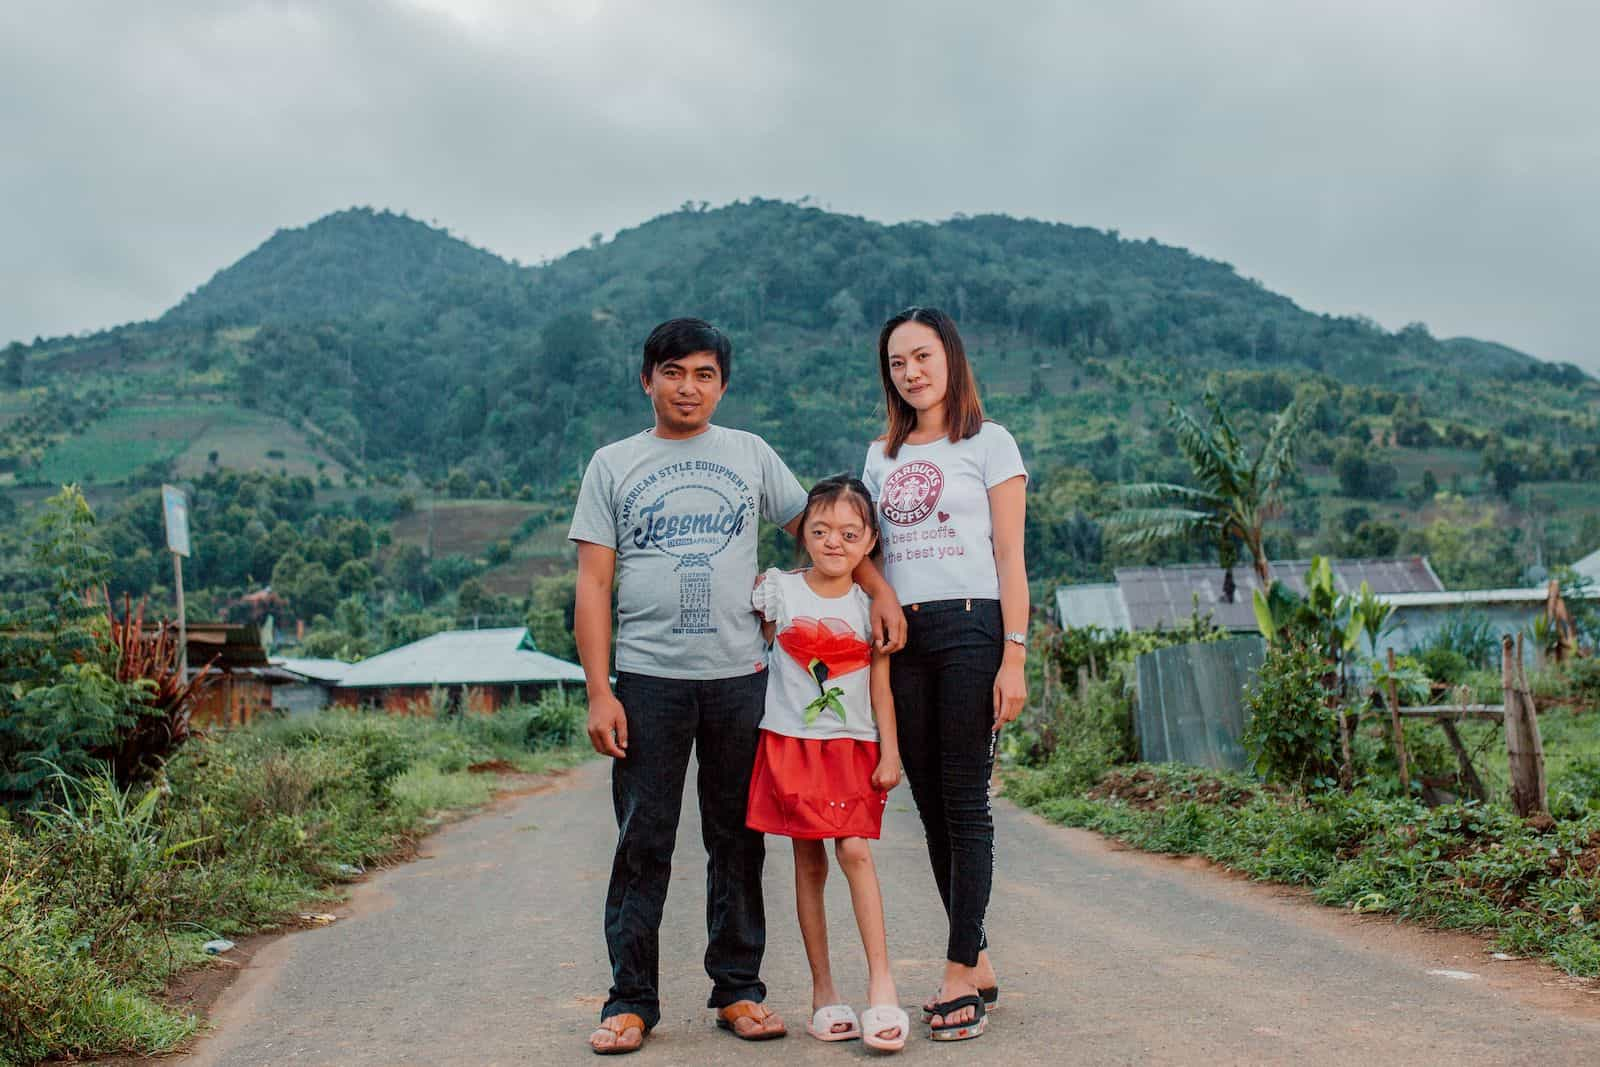 A photo of a girl with Apert Syndrome standing with two adults on a road in front of a mountain.